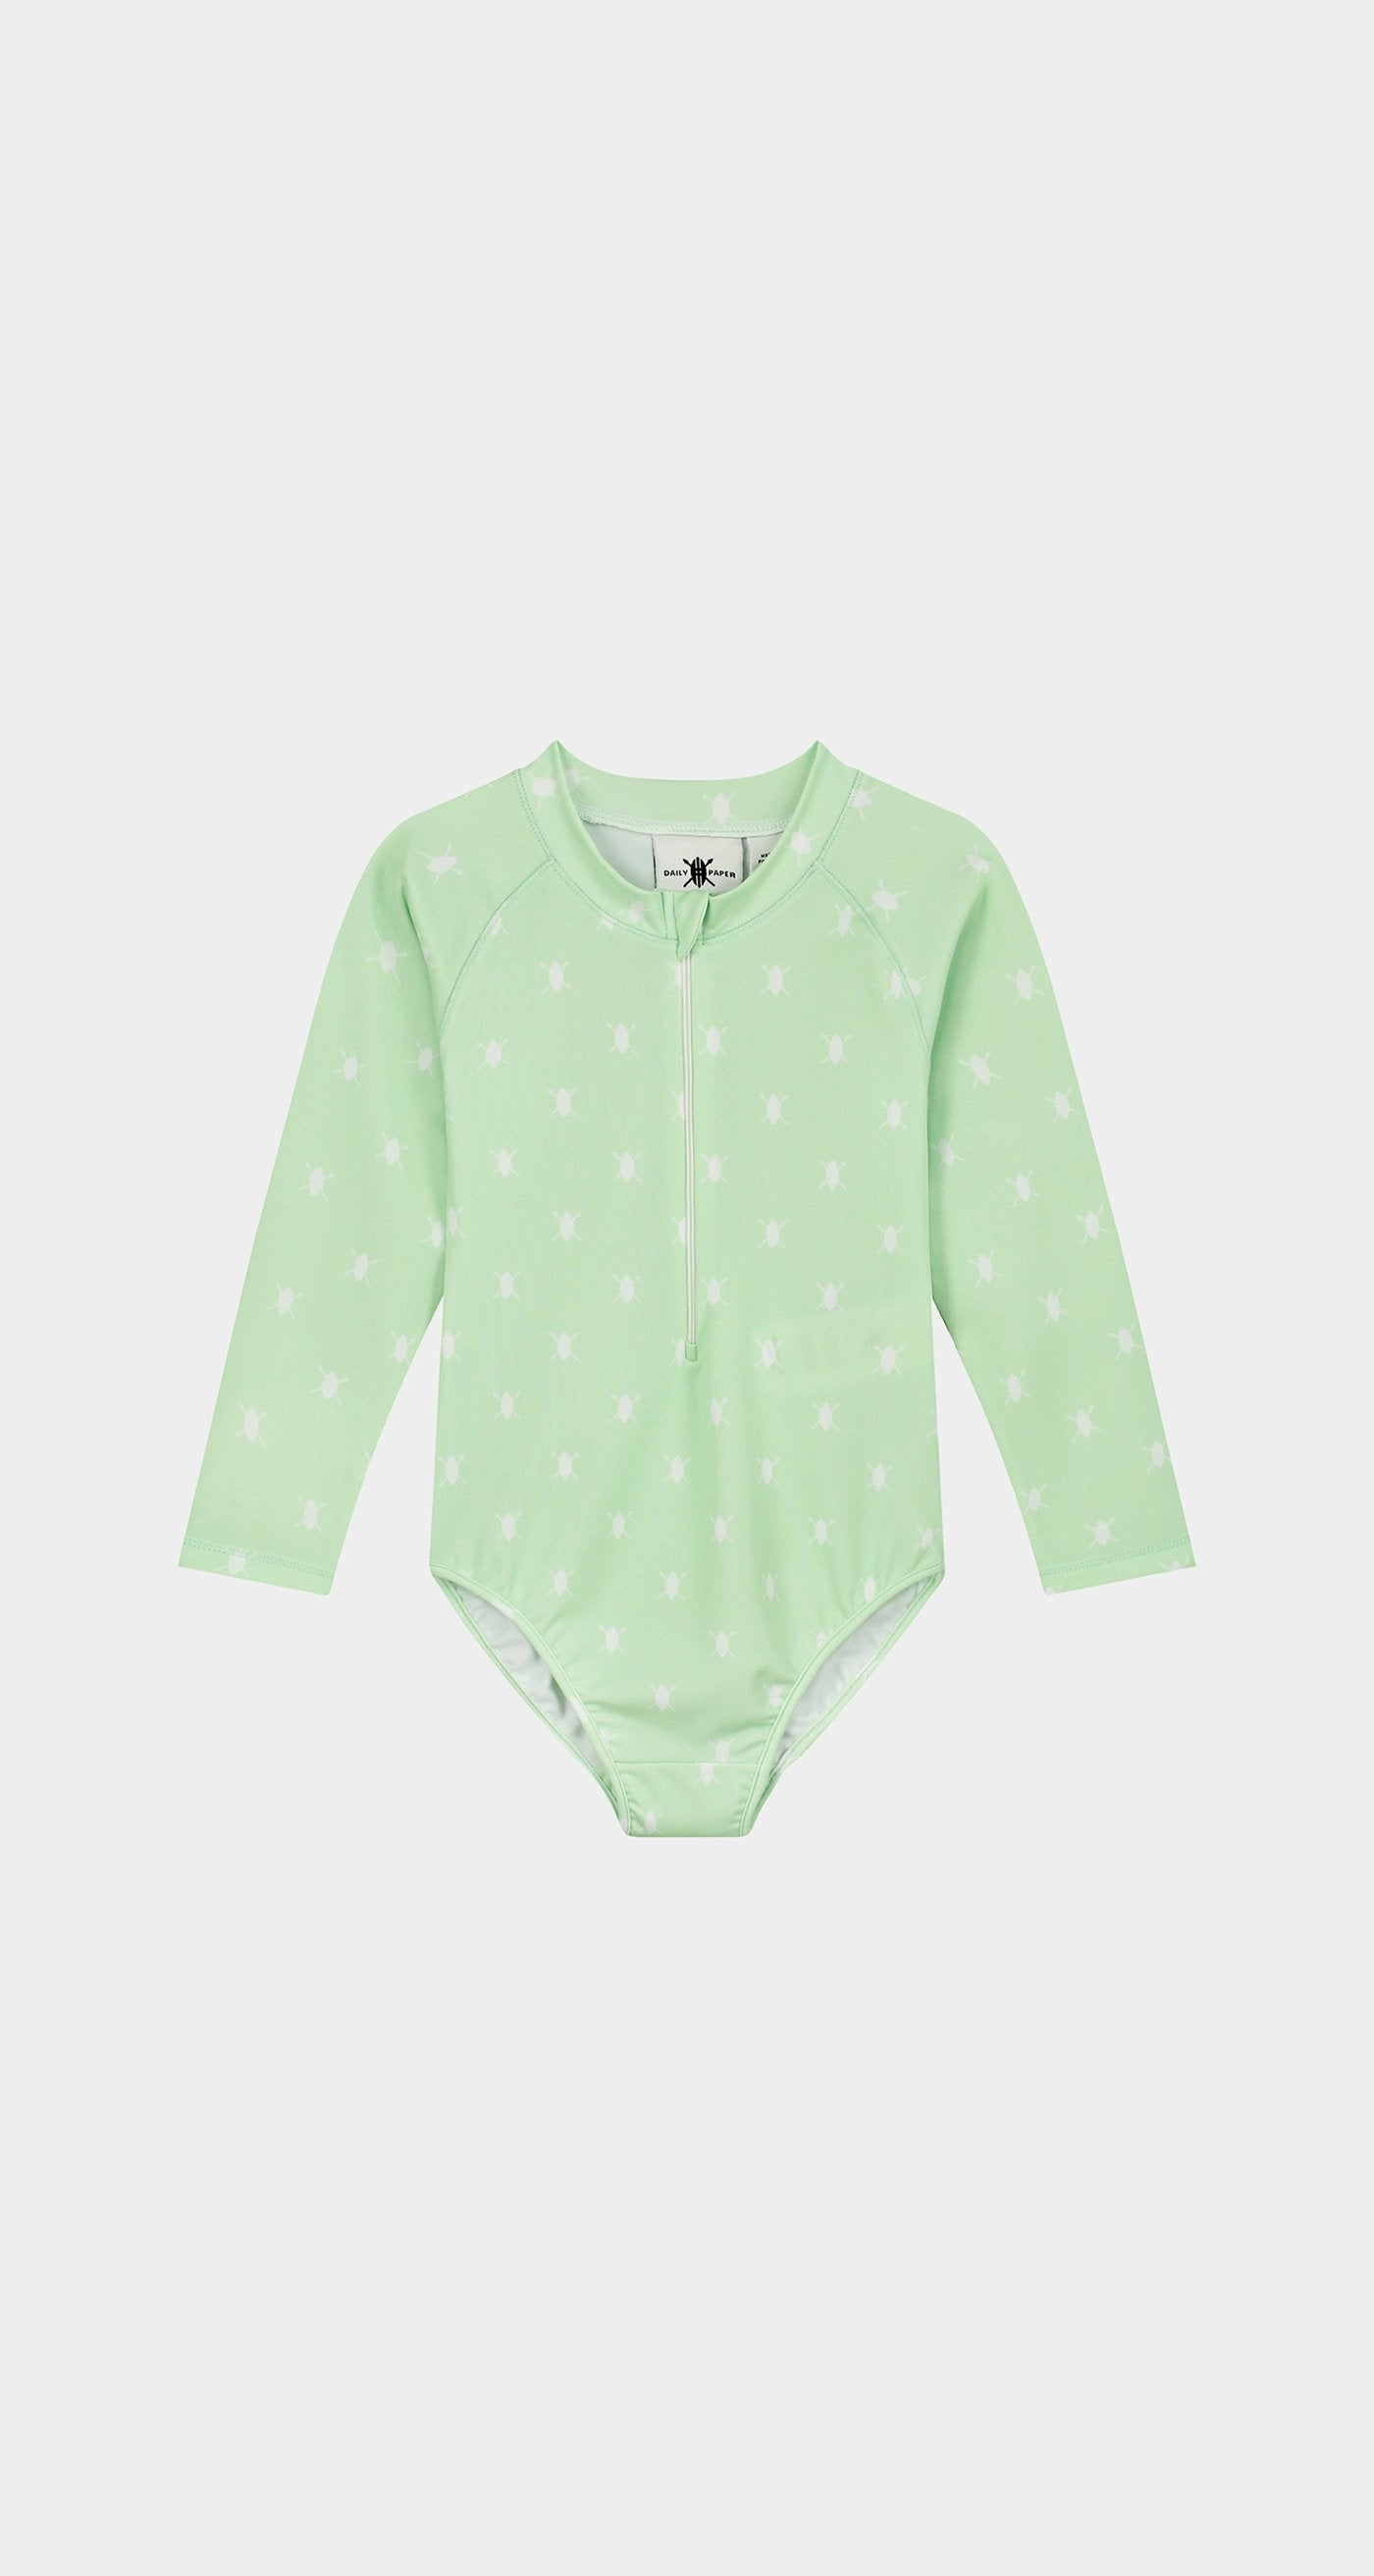 Daily Paper - Patina Green Kids Shield Longsleeve Swimsuit Front